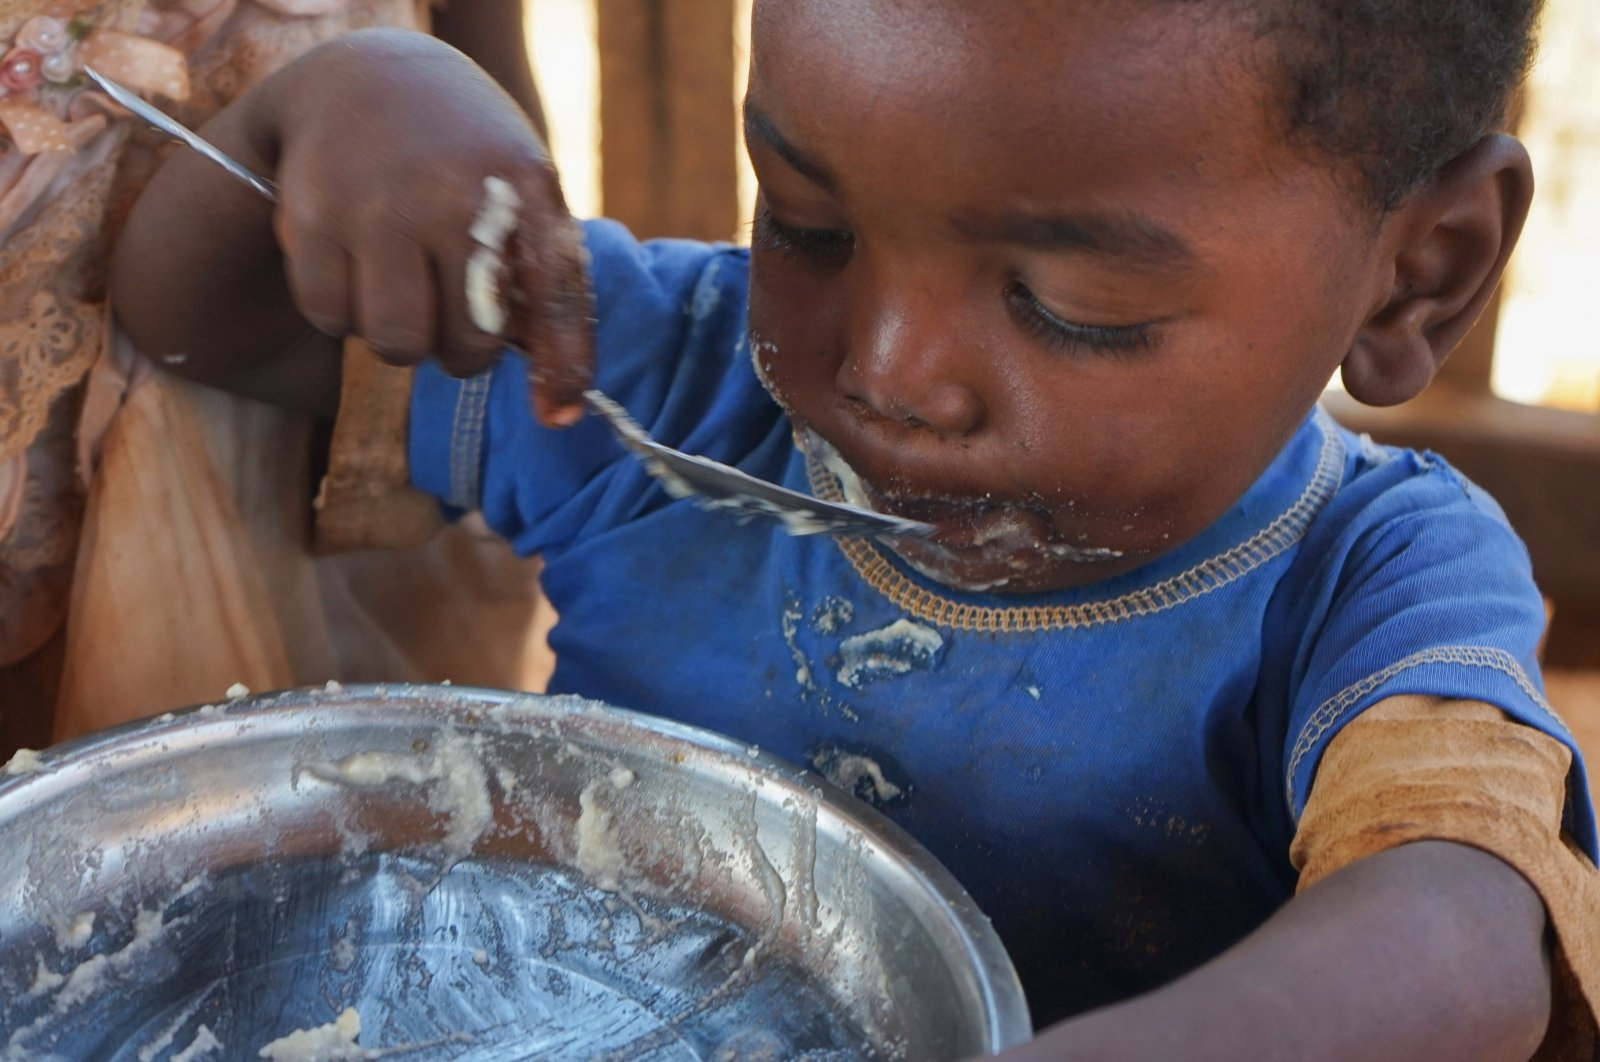 A Malagasy child eats a meal at the Avotse feeding program that benefits malnourished children with hot meals in Maropia Nord village in the region of Anosy, southern Madagascar, Sept. 30, 2021. (Reuters Photo)